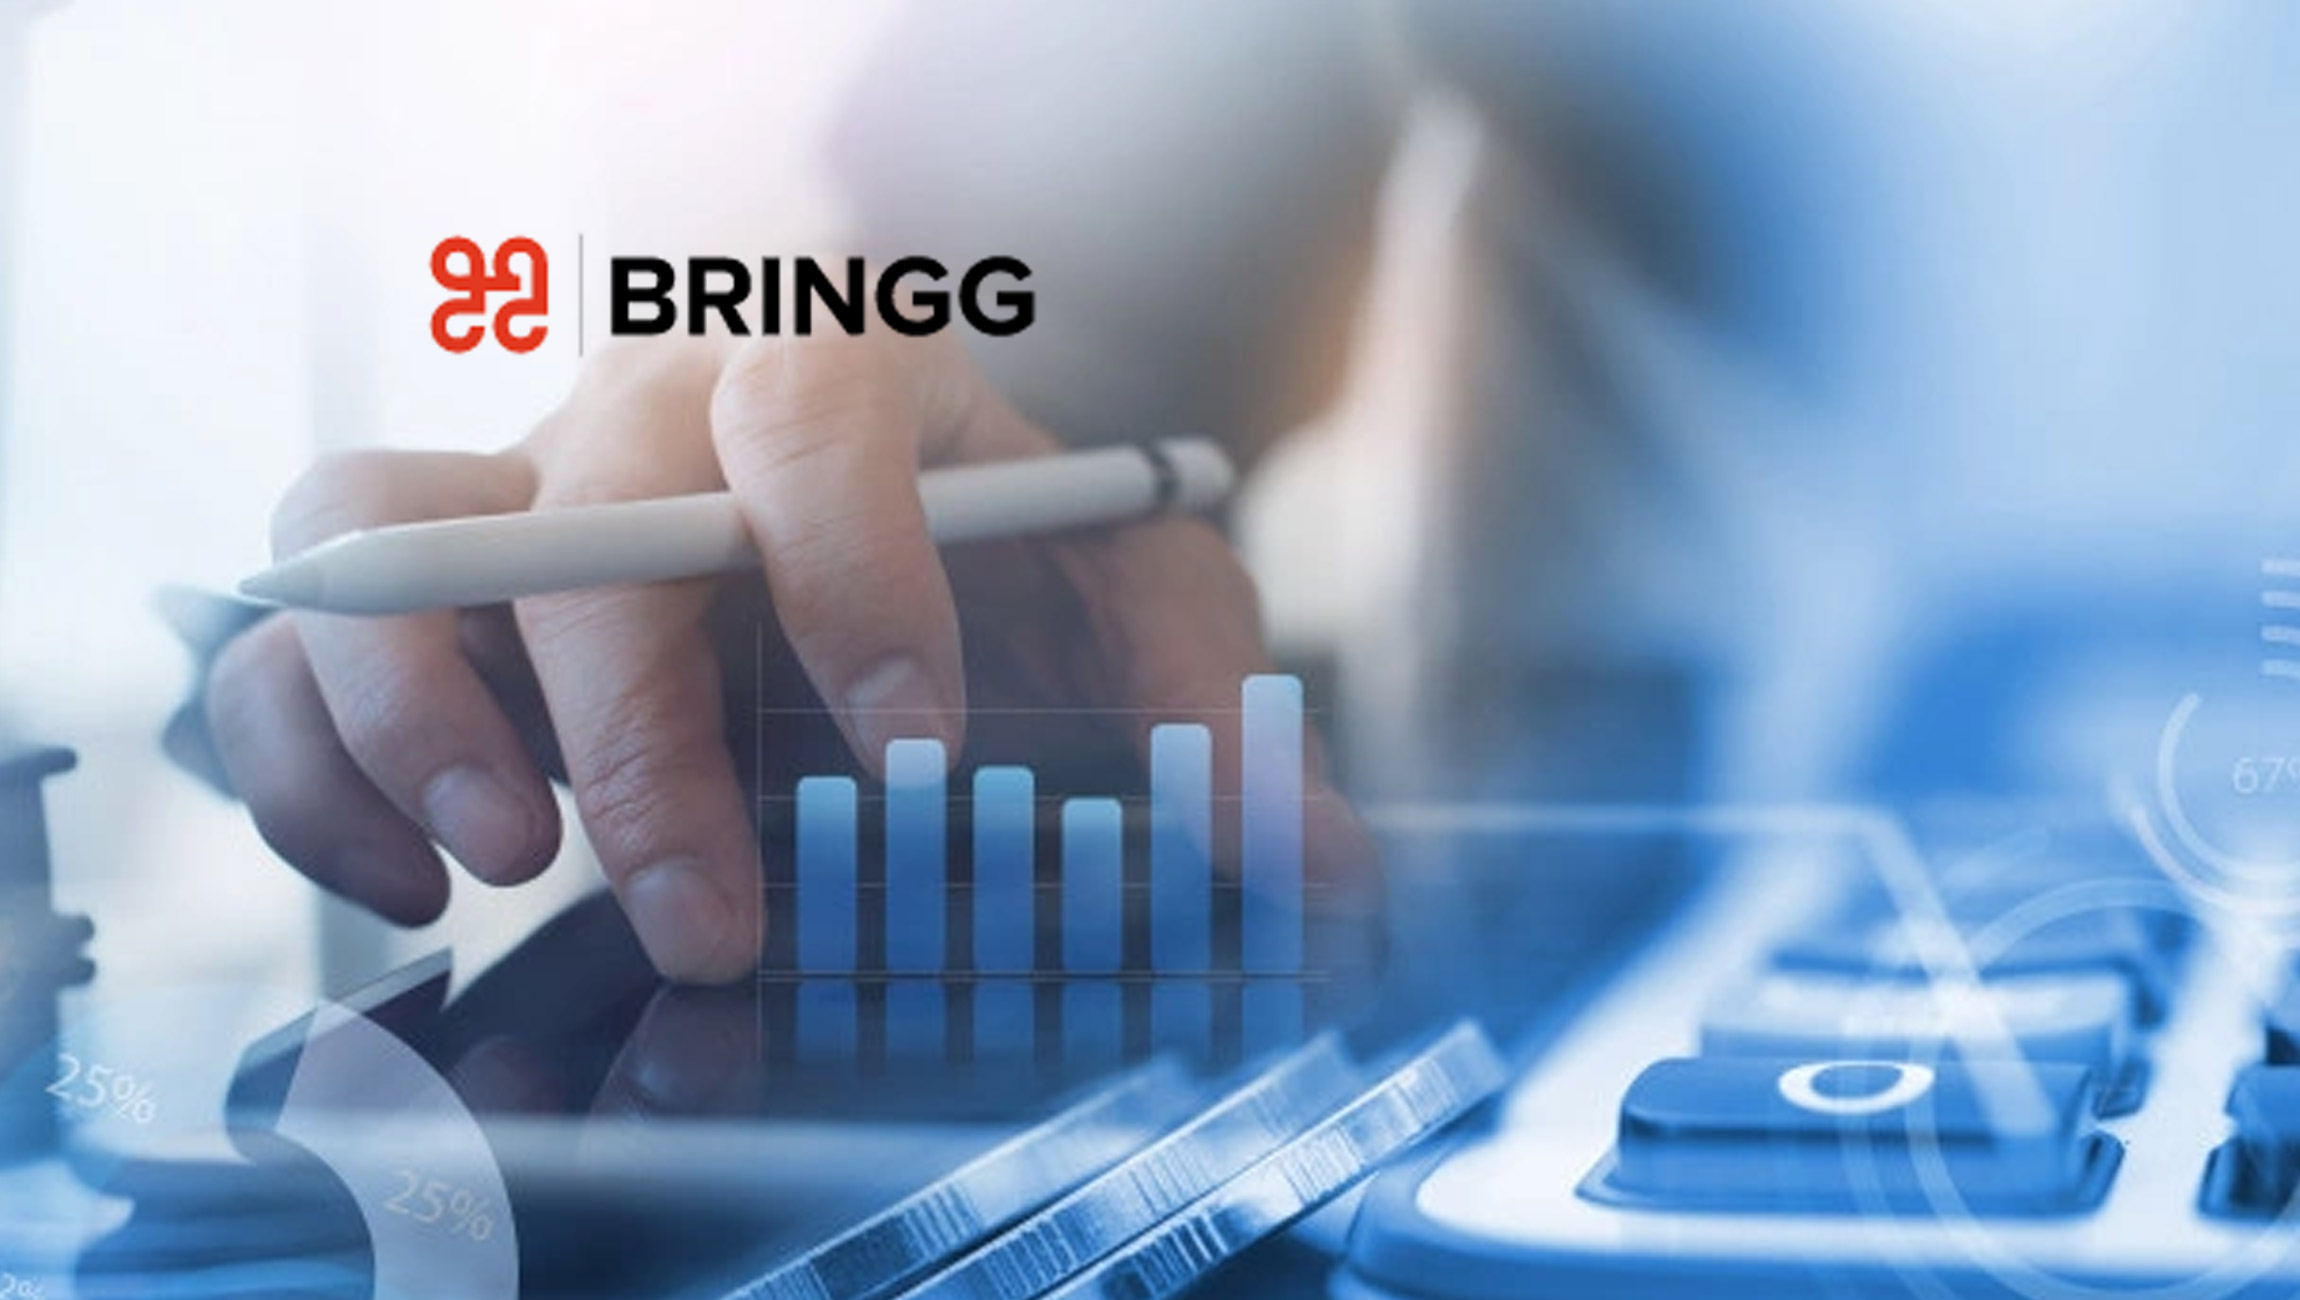 Bringg-Recognized-Among-Fulfillment-Analytics-Vendors_-Noted-for-High-Business-Value-According-to-Independent-Research-Firm